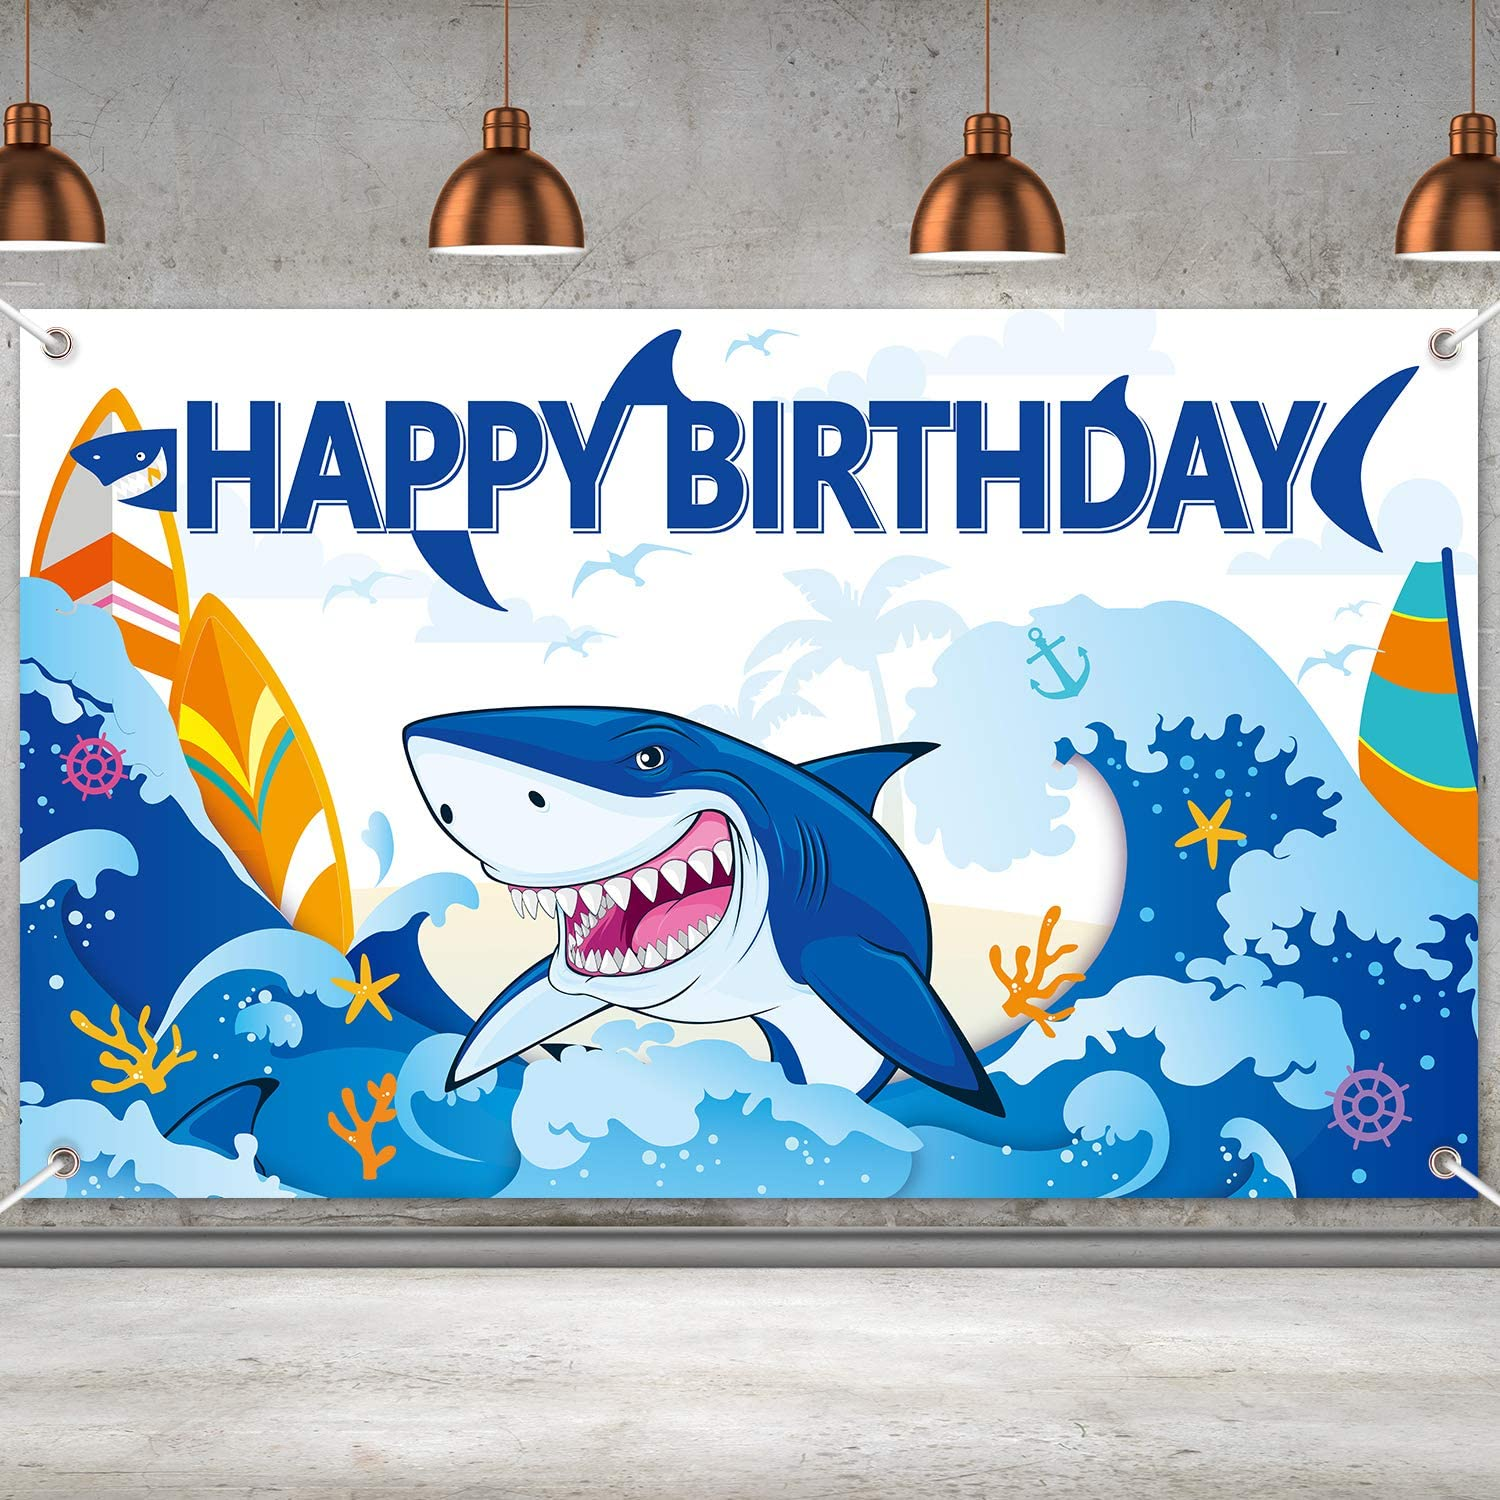 Shark Party Decorations Shark Birtjday Banner Backdrop Large Shark Zone Happy Birthday Yard Sign Backgroud Shark Themed Birthday Backdrop Party Indoor Outdoor Car Decorations Supplies